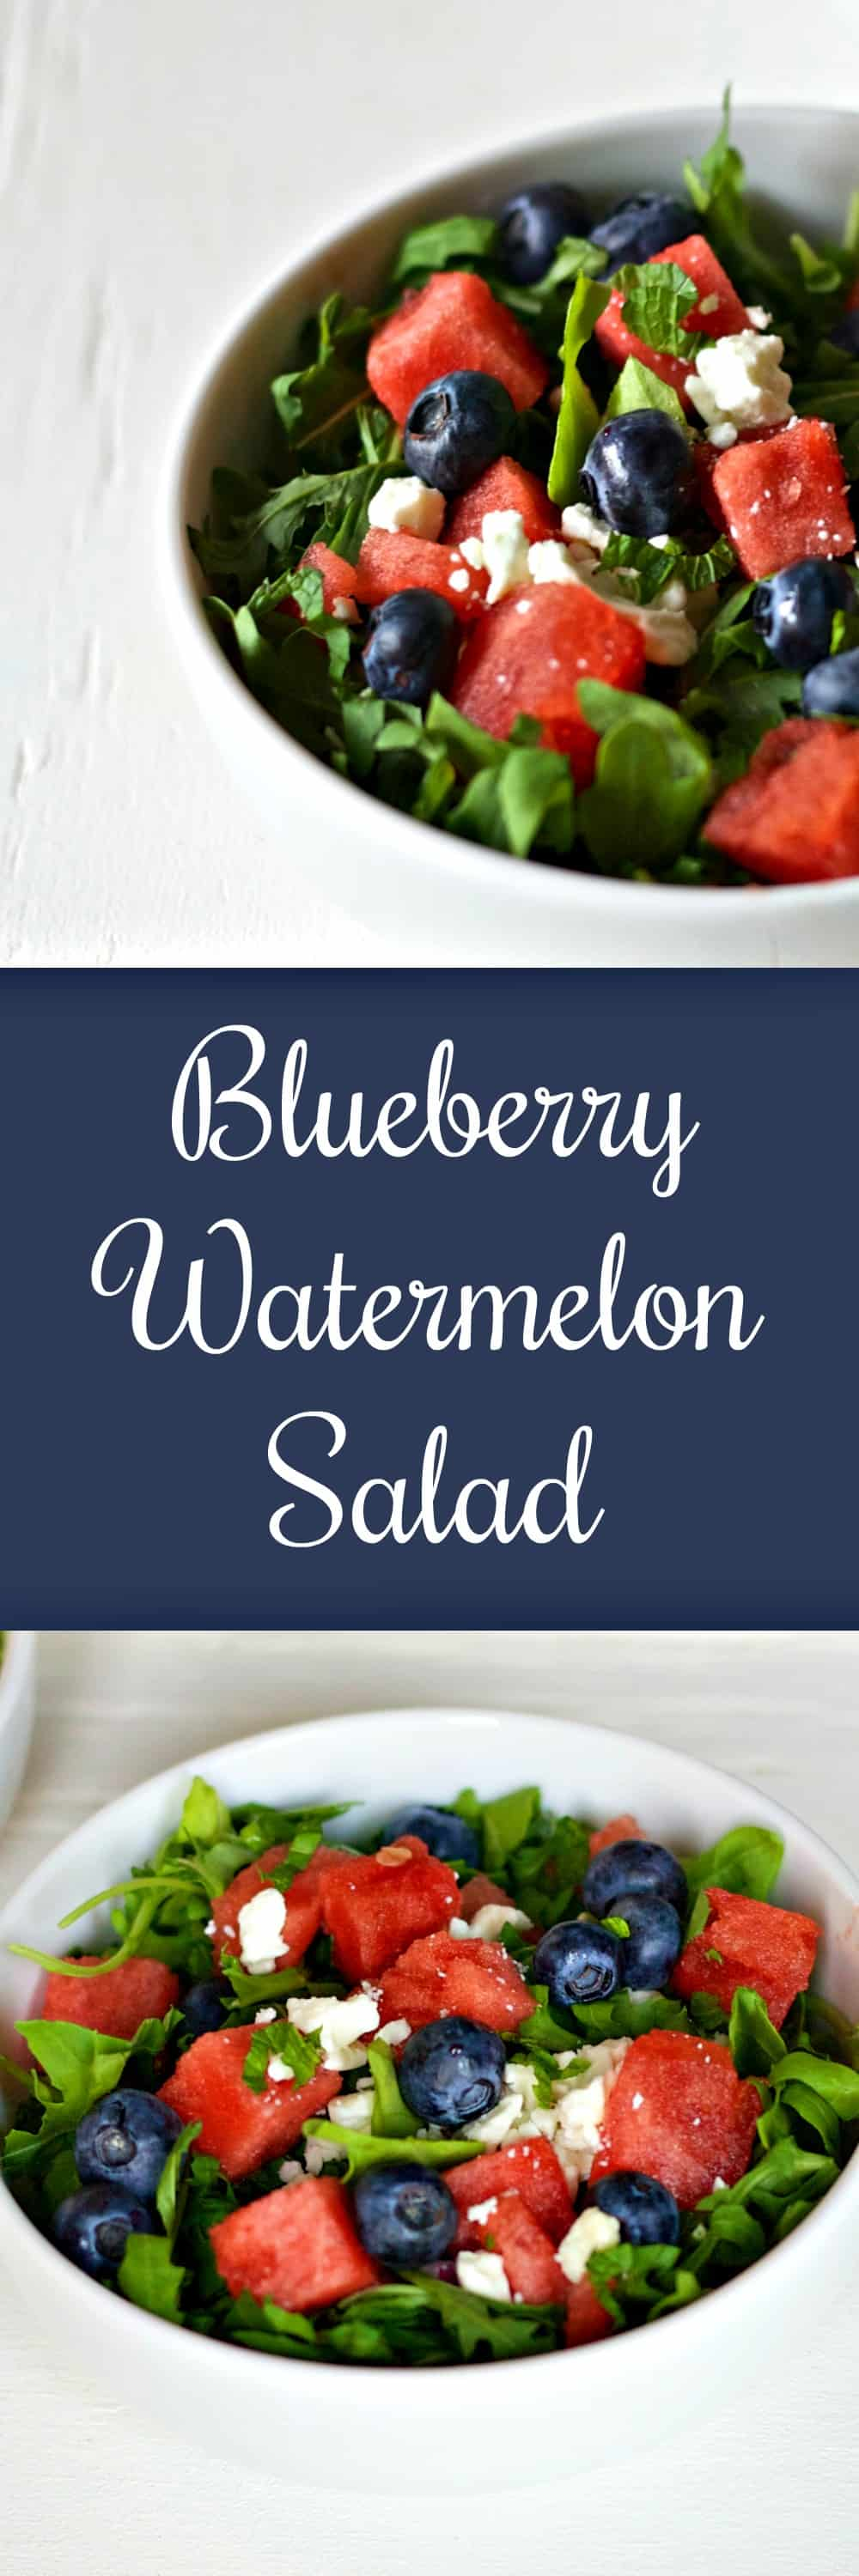 This Blueberry Watermelon Salad is the perfect summer side dish. Sweet fruits combine with peppery arugula to create a delicious and fresh salad recipe